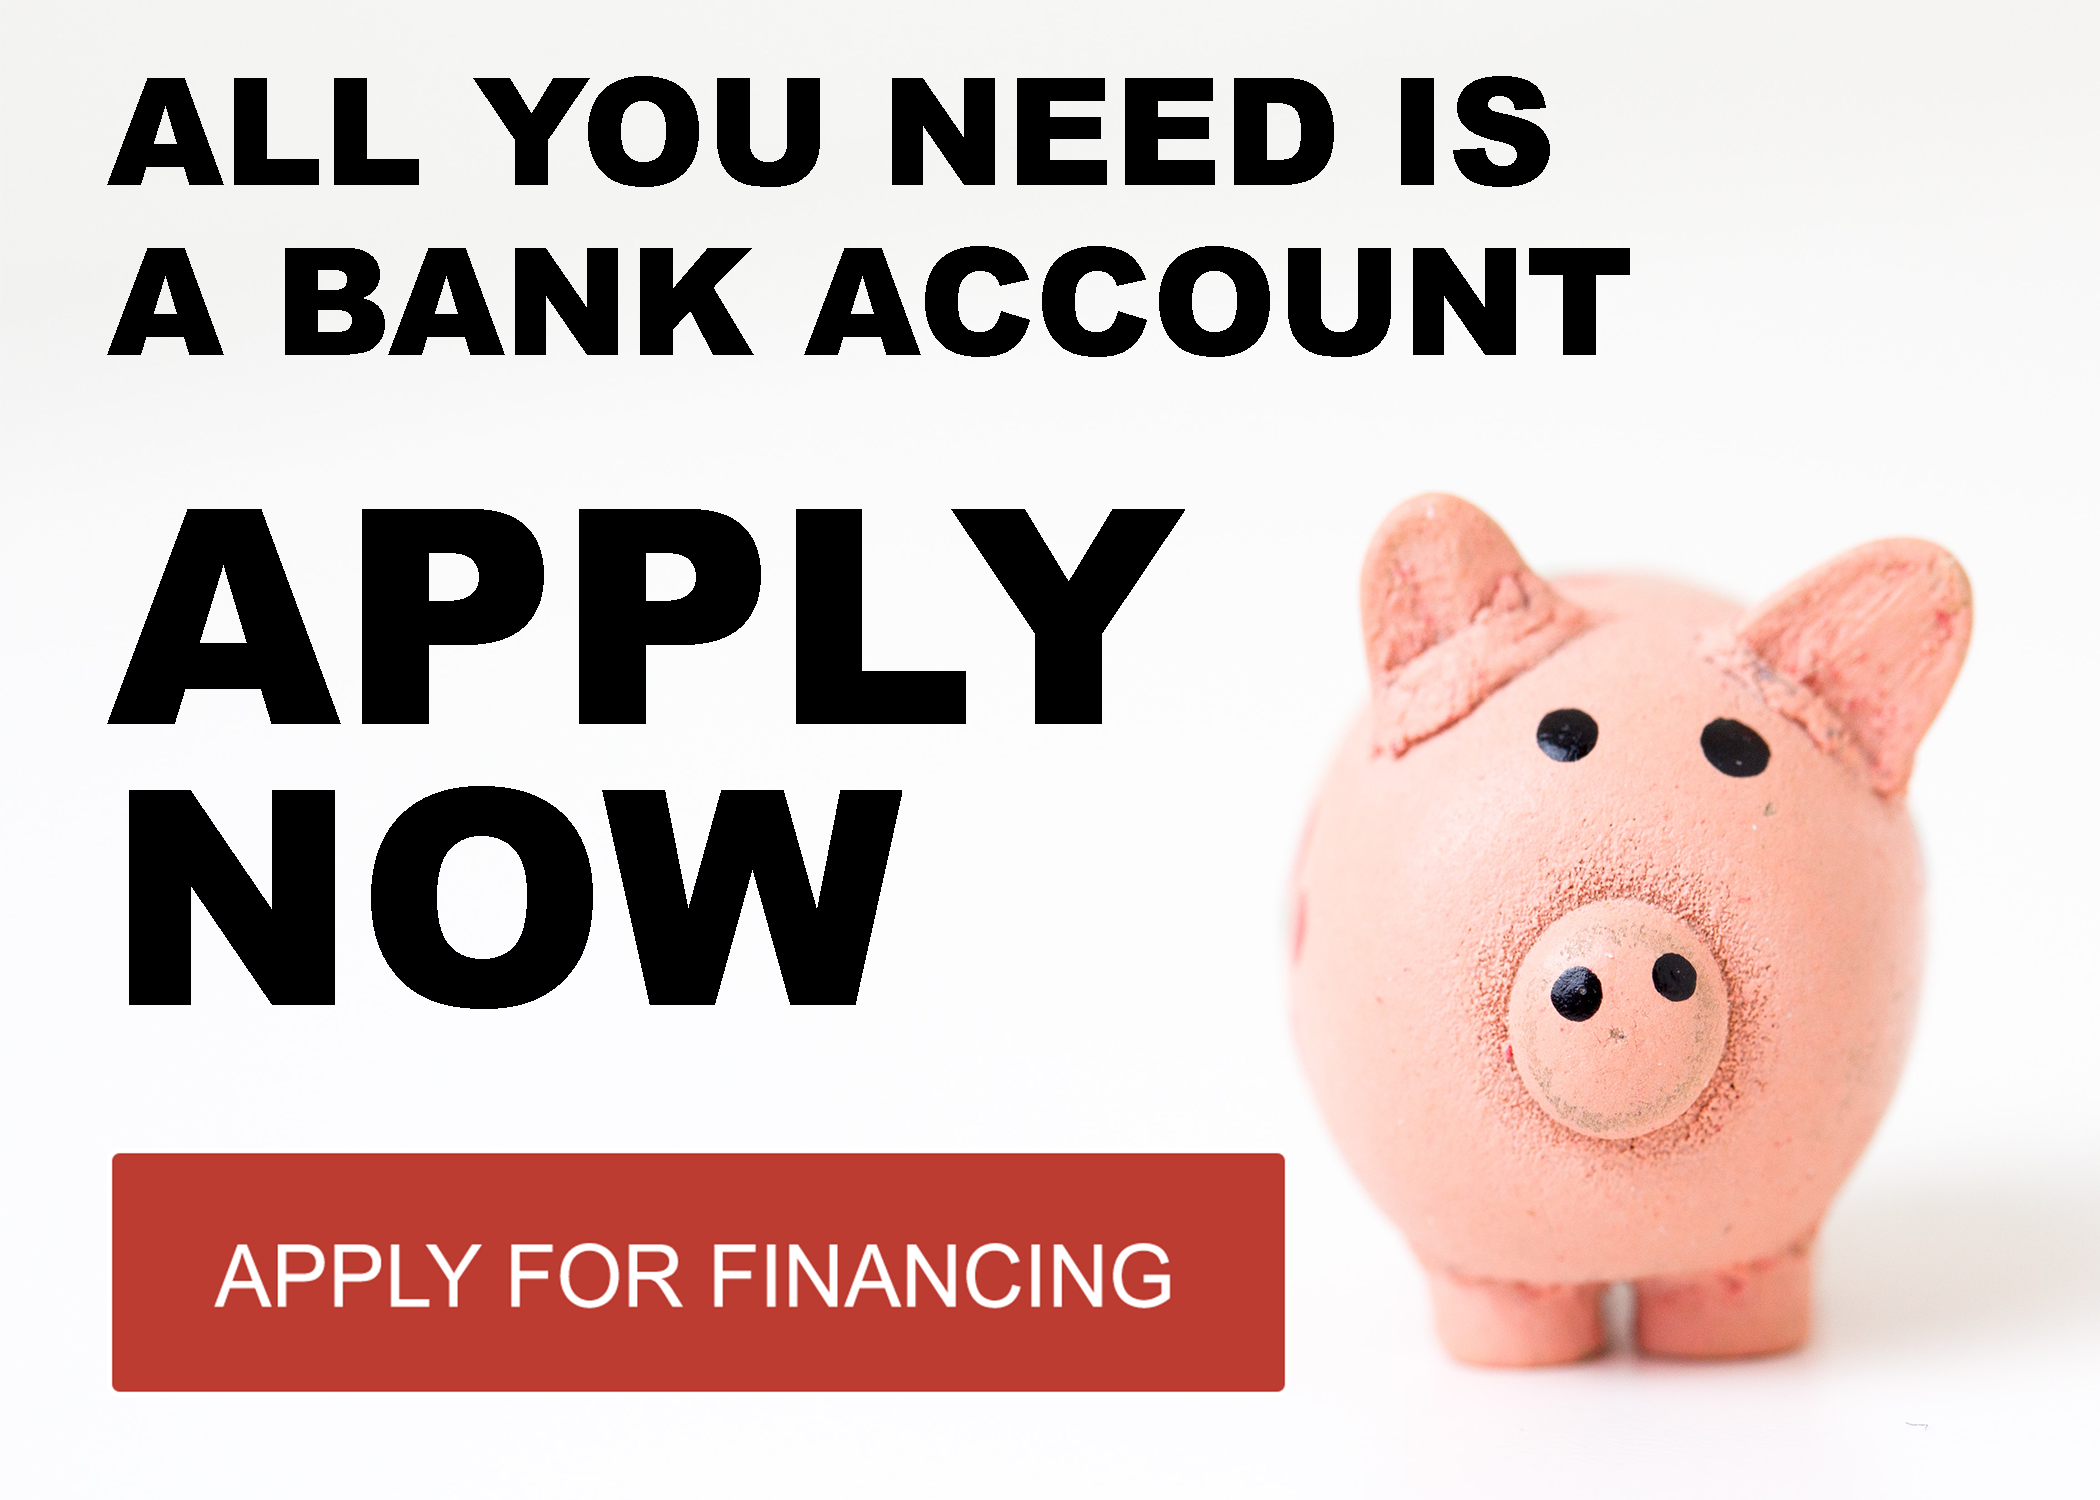 FINANCING ALL YOU NEED IS A BANK ACCOUNT